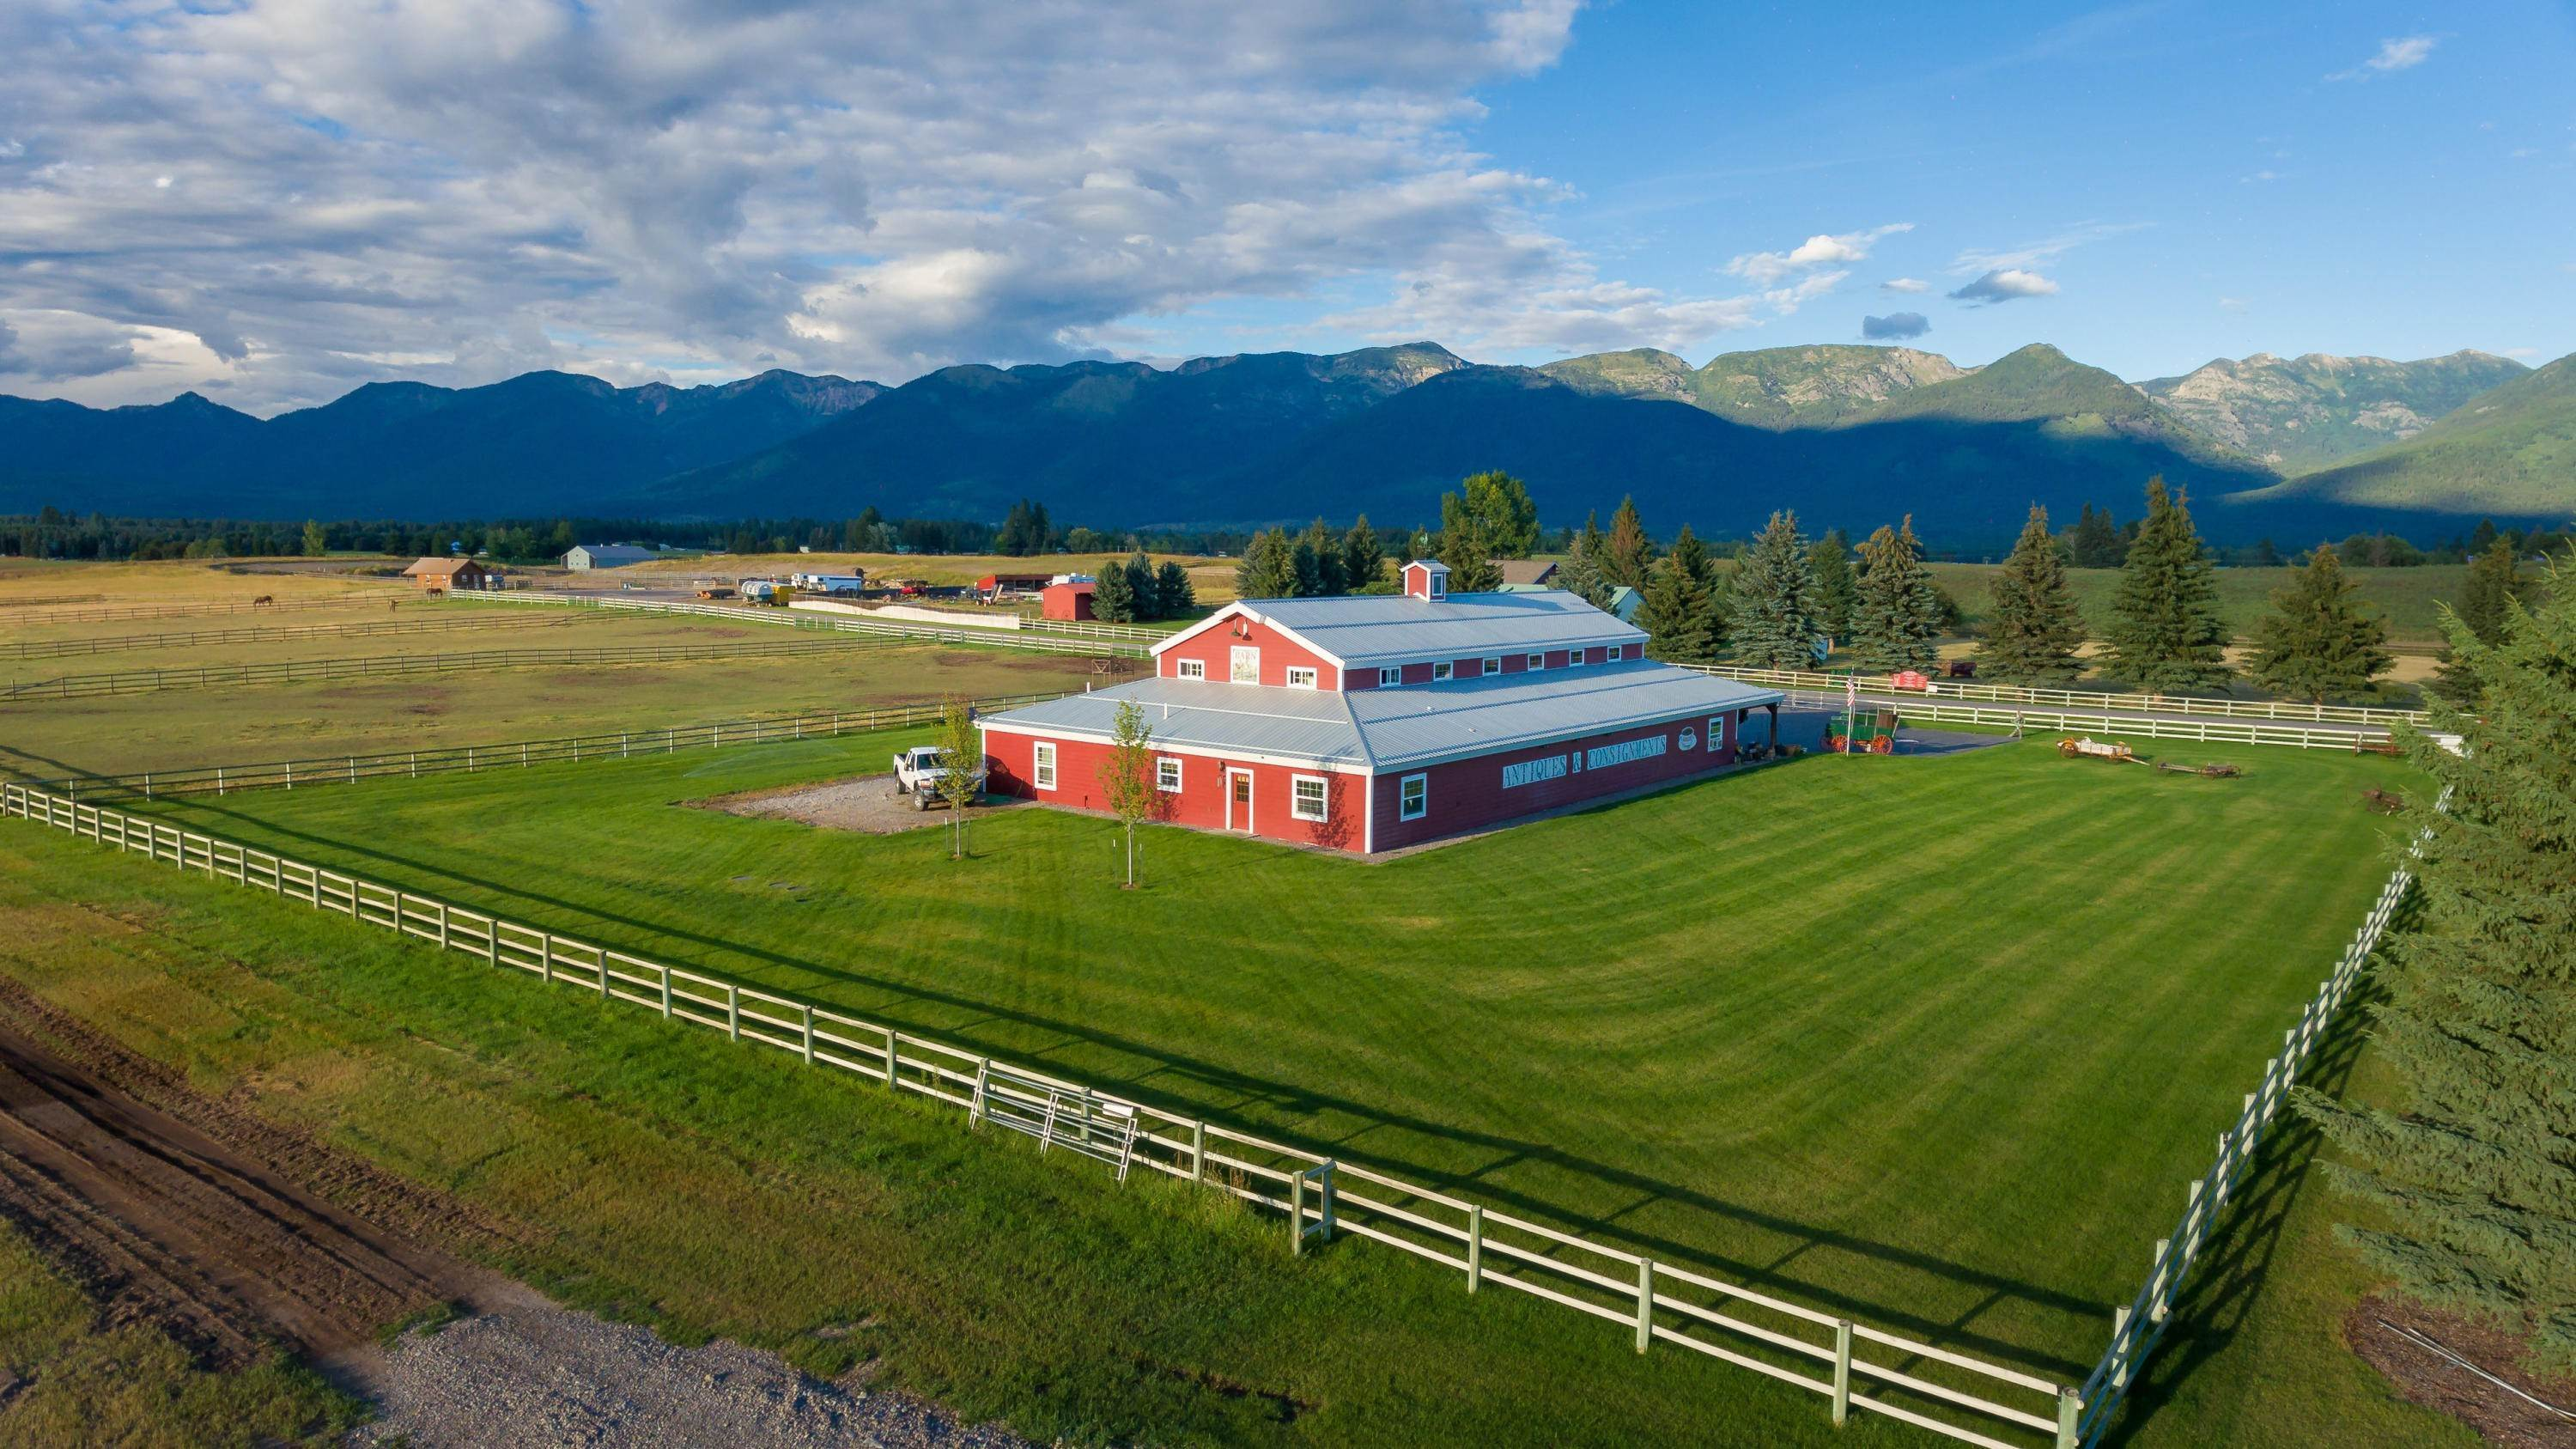 Commercial for Sale at 100 Hill Road Bigfork, Montana 59911 United States